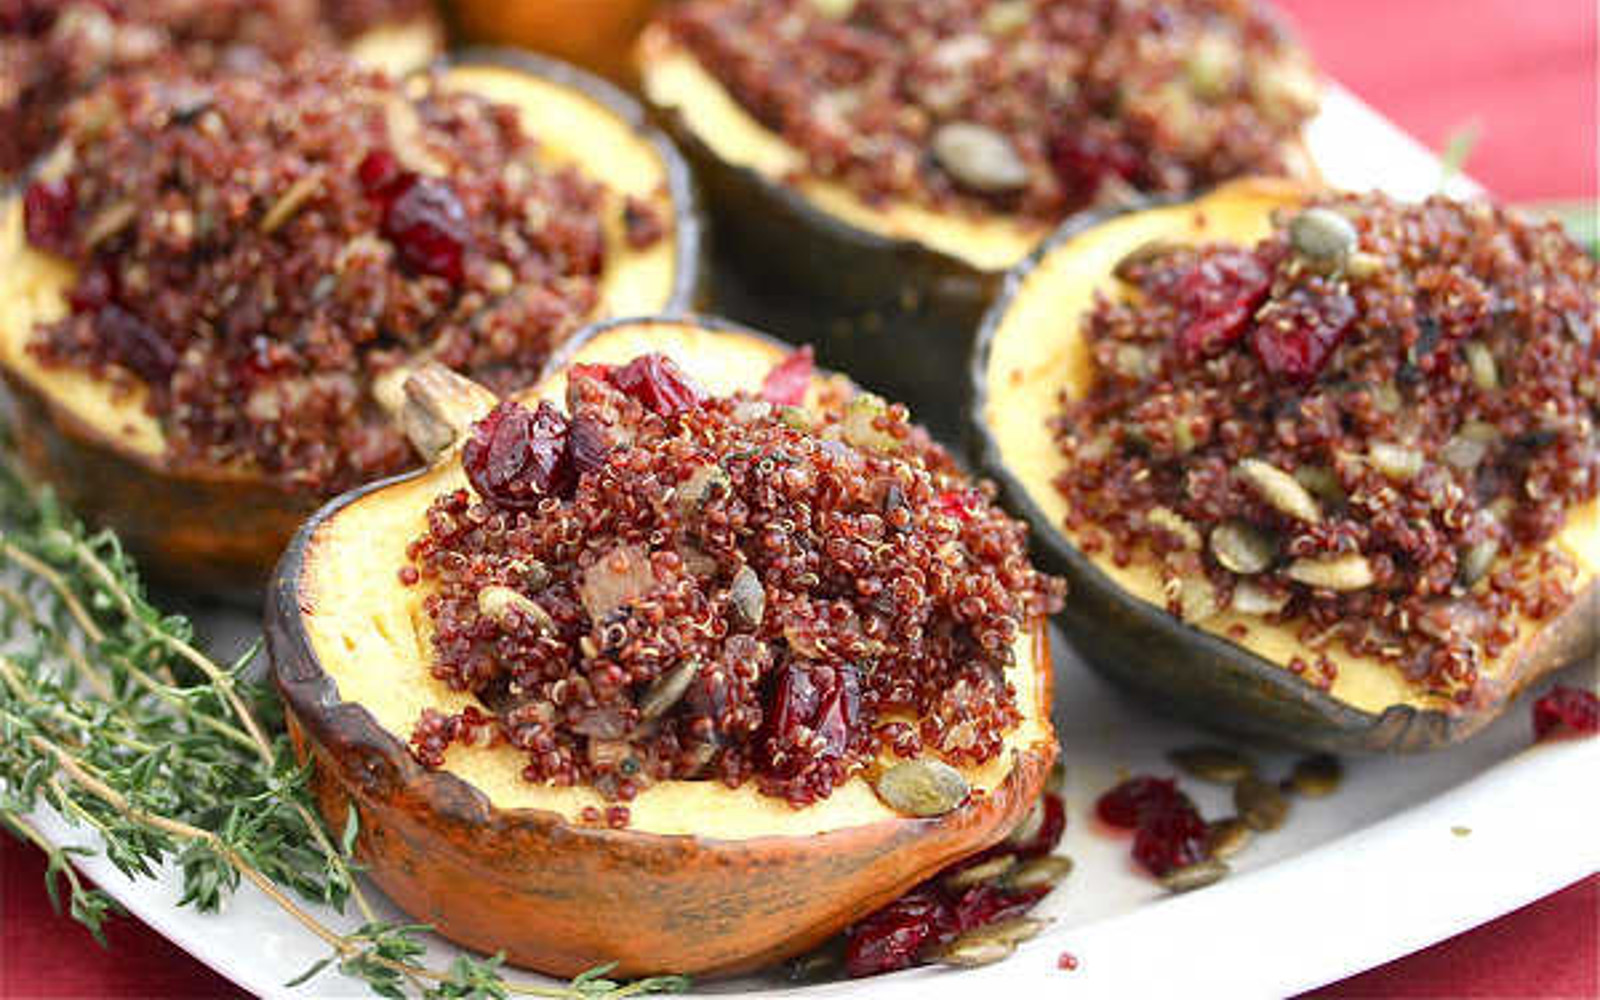 roasted acorn squash stuffed with quinoa